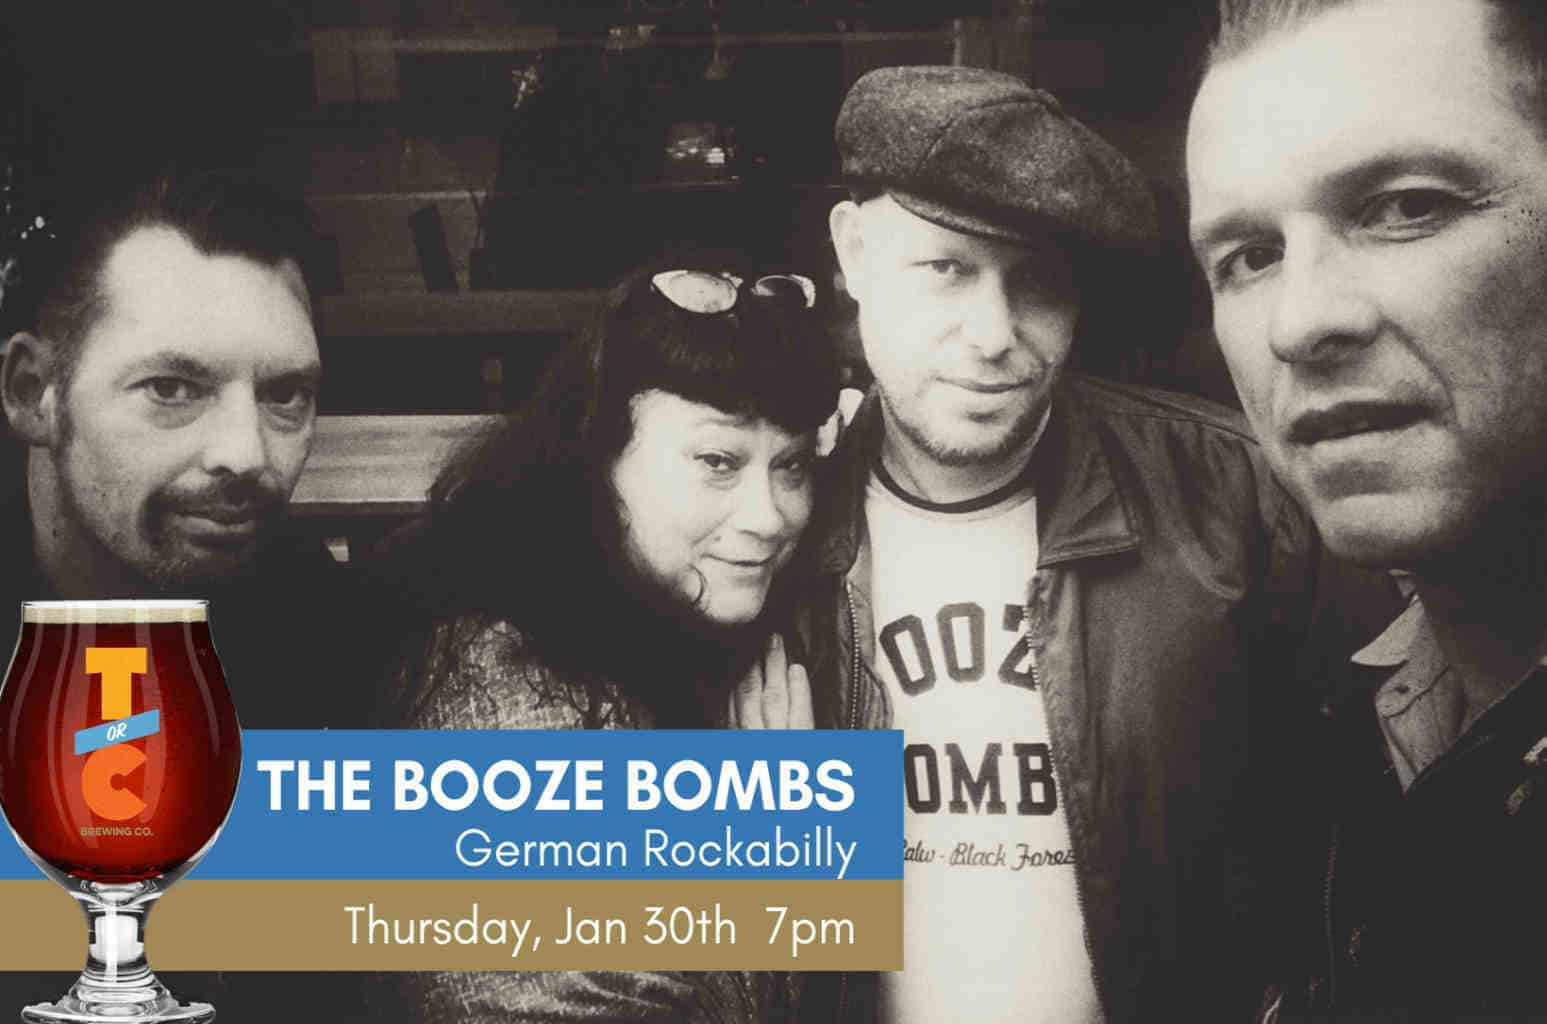 The Booze Bombs - German Rockabilly - with CW Ayon Duo opening